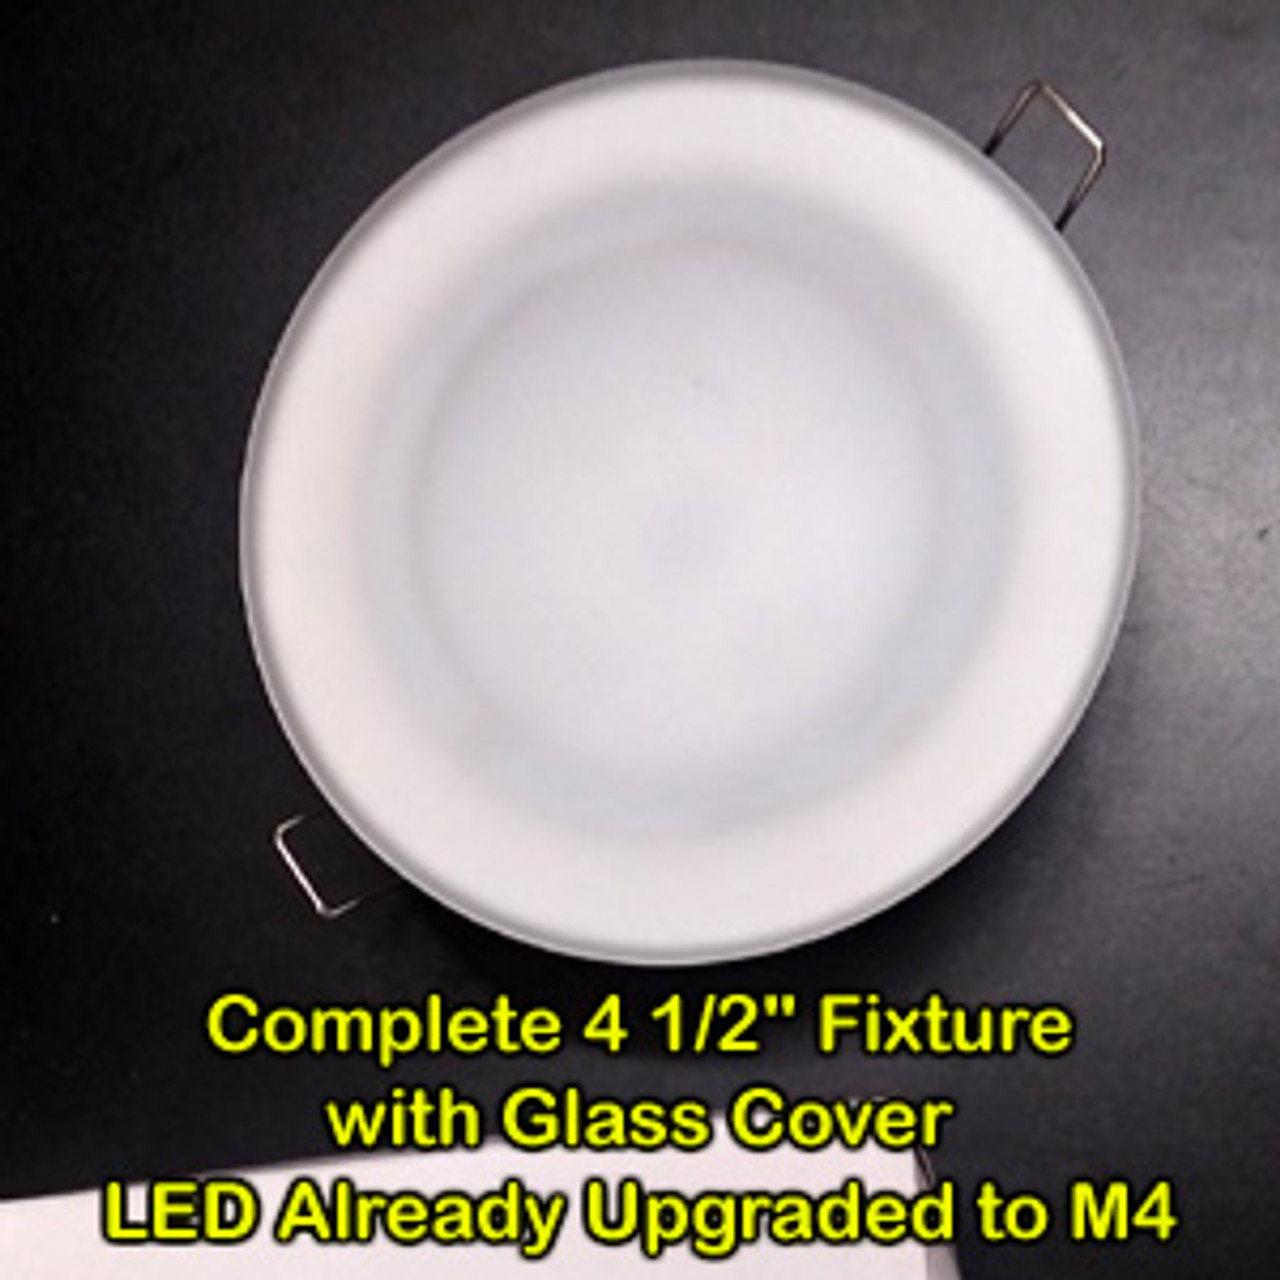 """Round 4 1/2"""" Complete Fixture with Upgraded LED Conversion"""